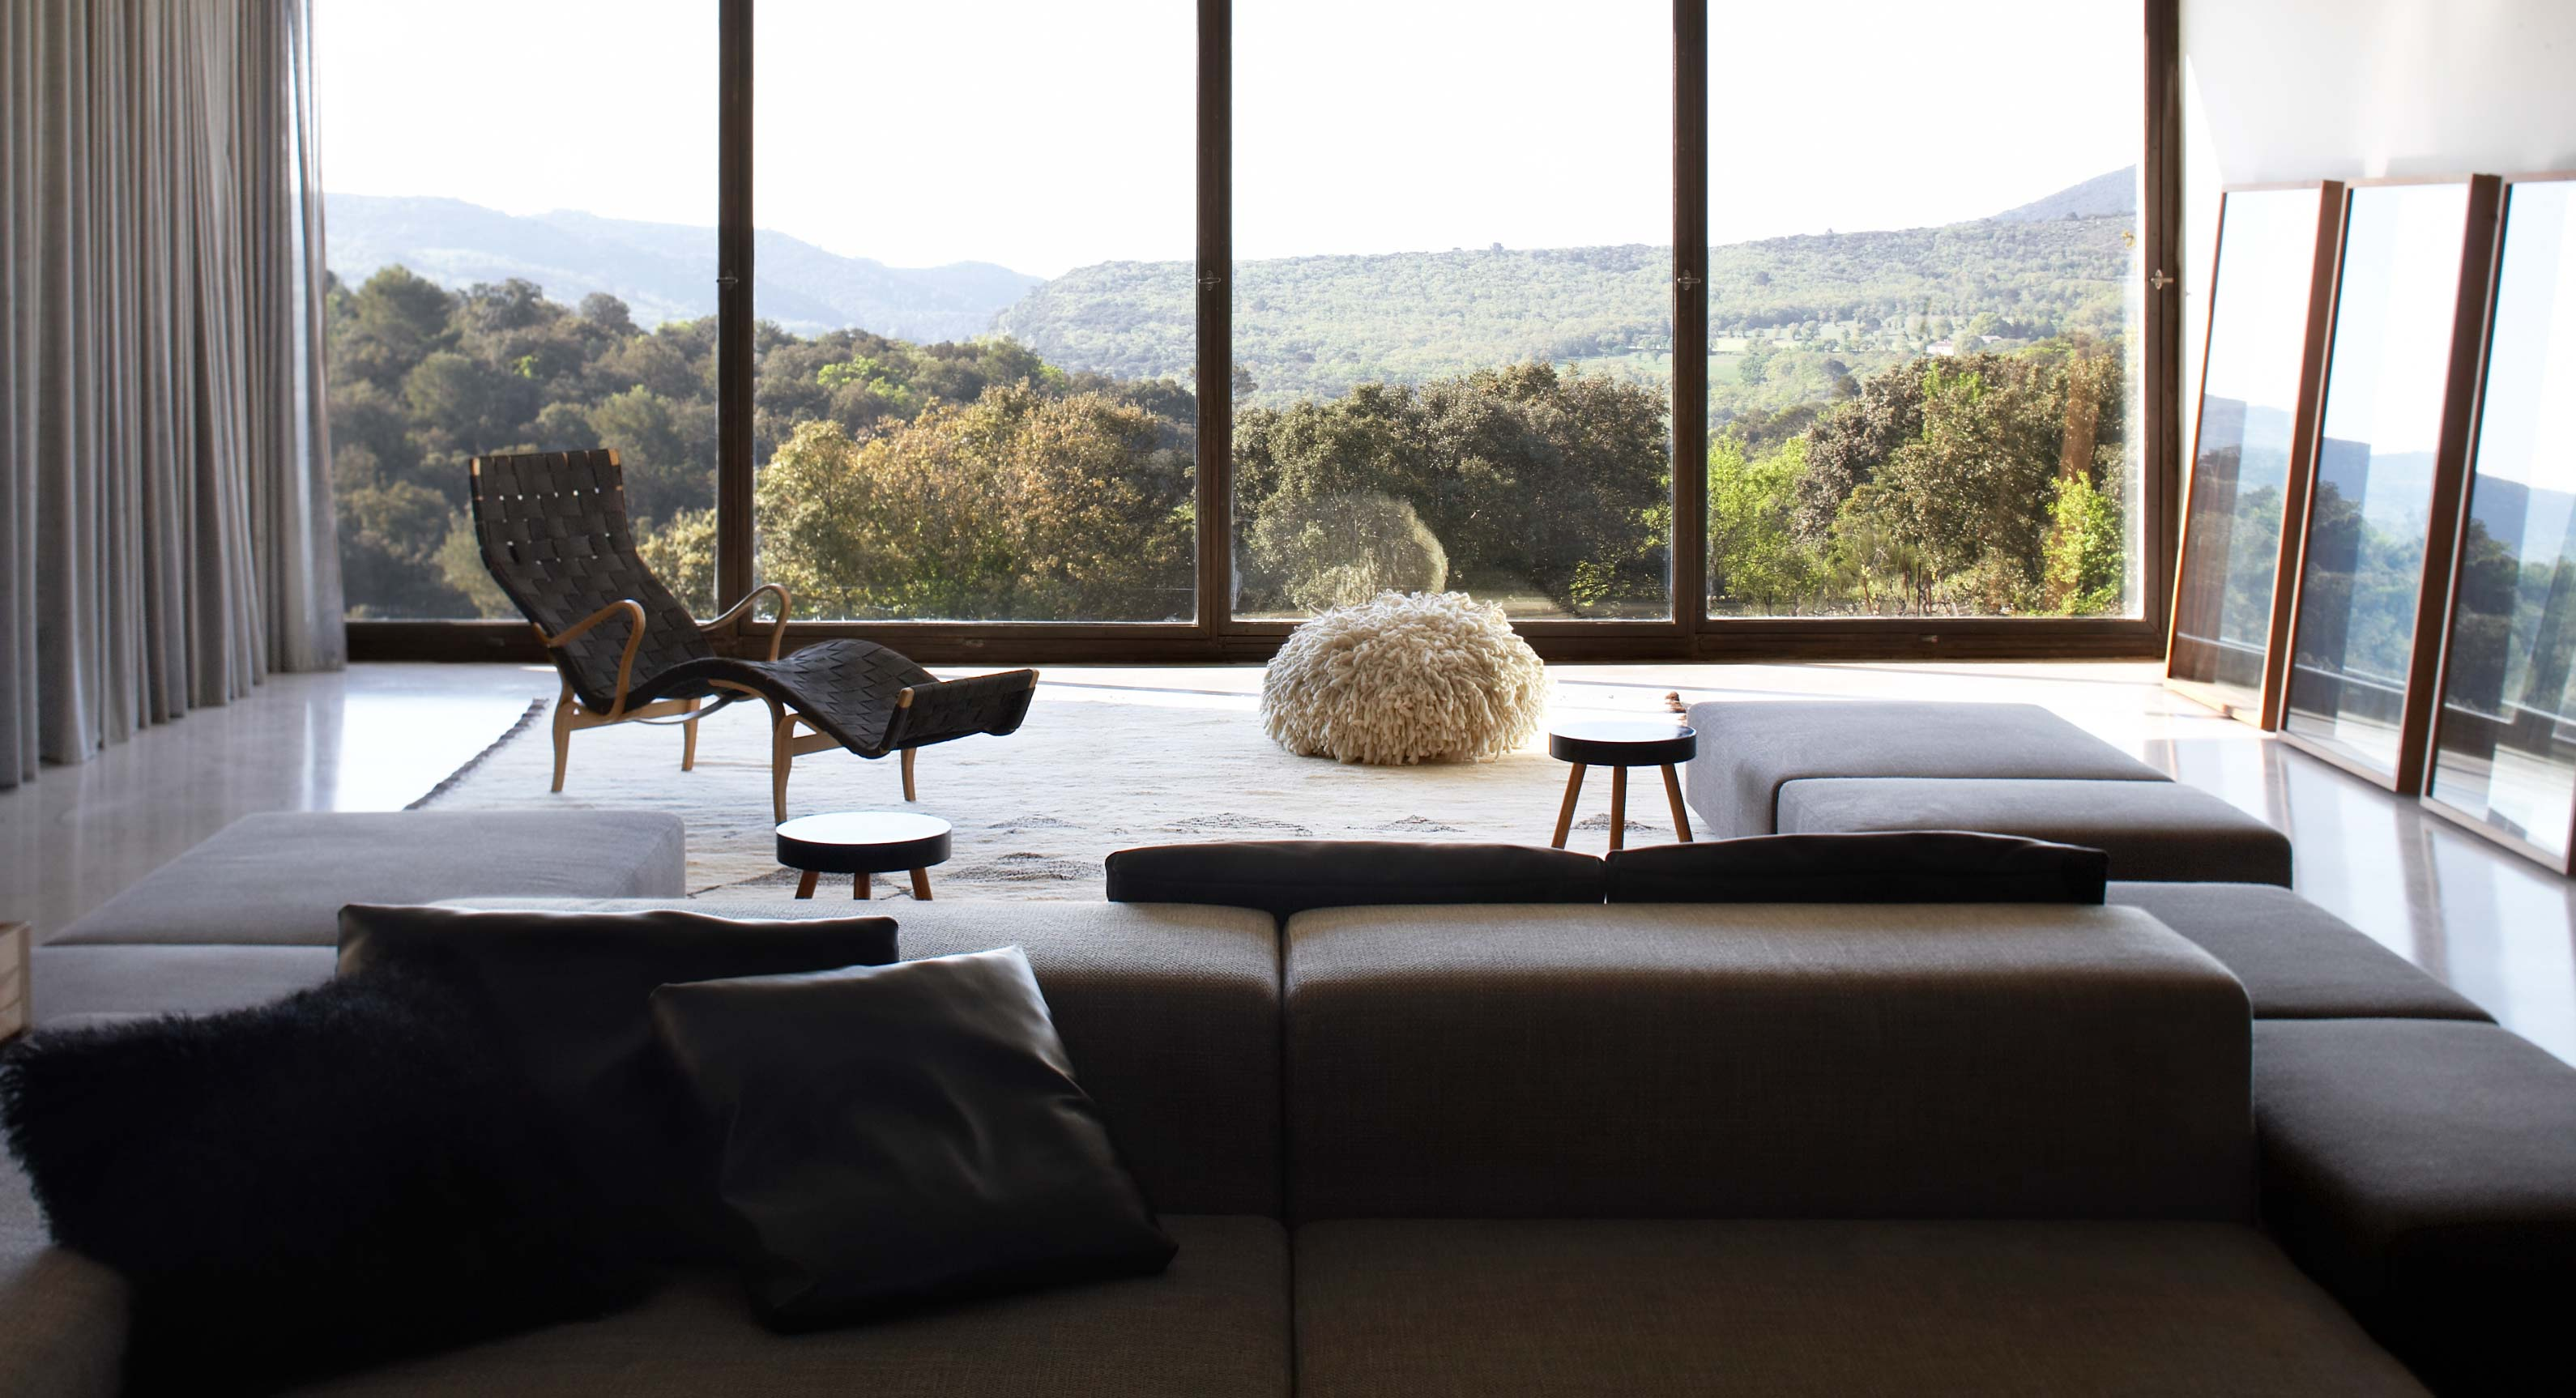 Studio KO's Villa G Sits High Above The Luberon Forest